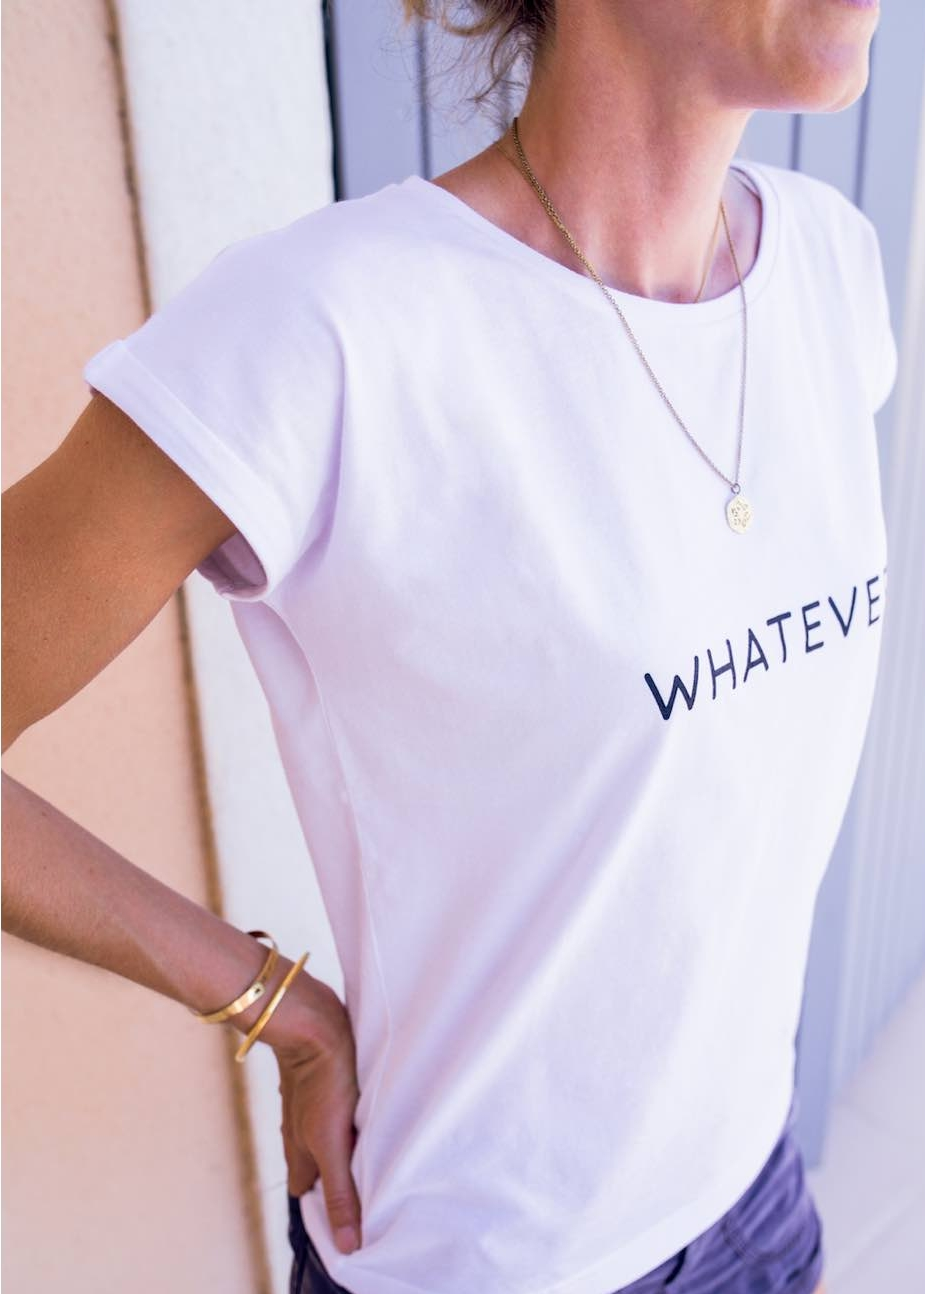 Stylodeco-la-collab-t-shirt-whatever.1.jpg